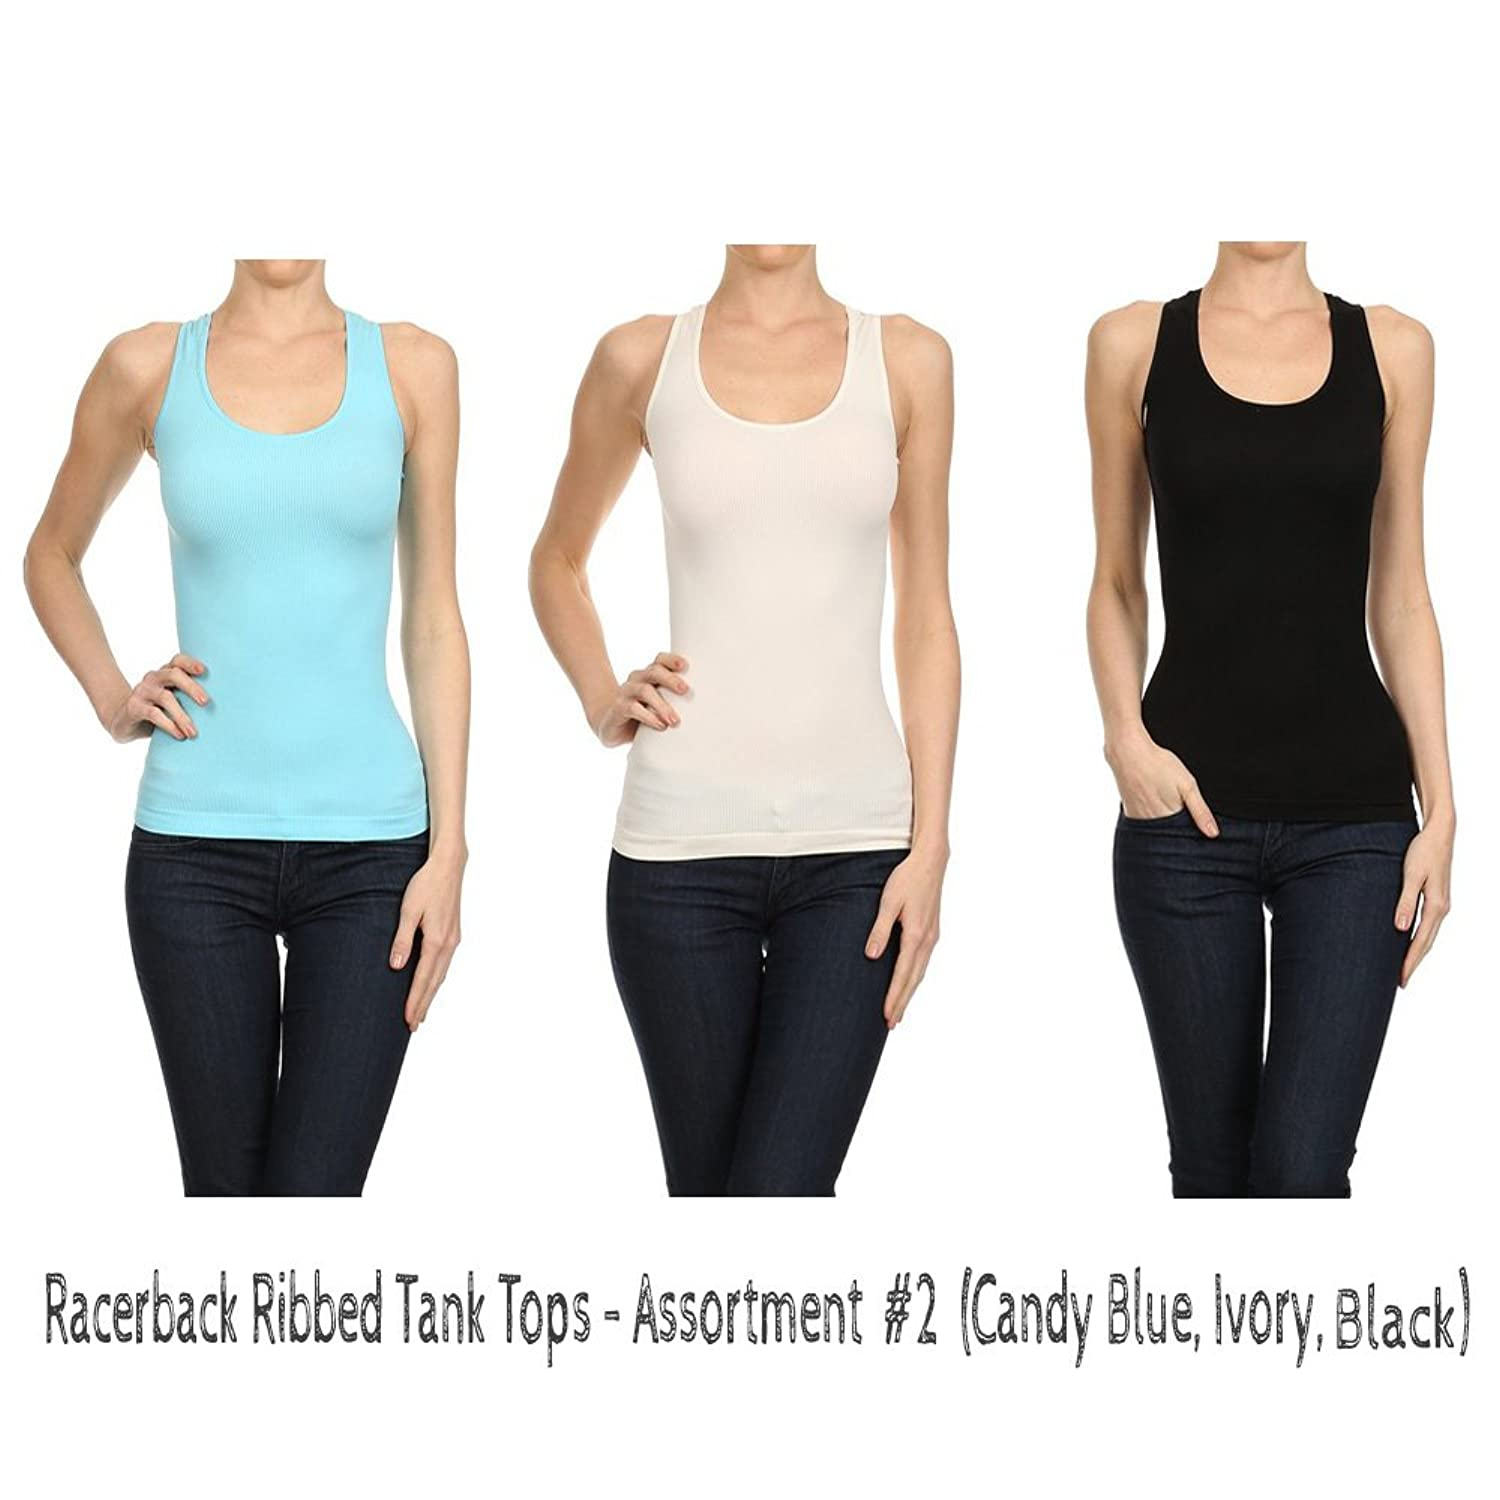 CCFW Super Stretchy Ribbed Racer Back Tank Tops - Assorted Colors 3Packs